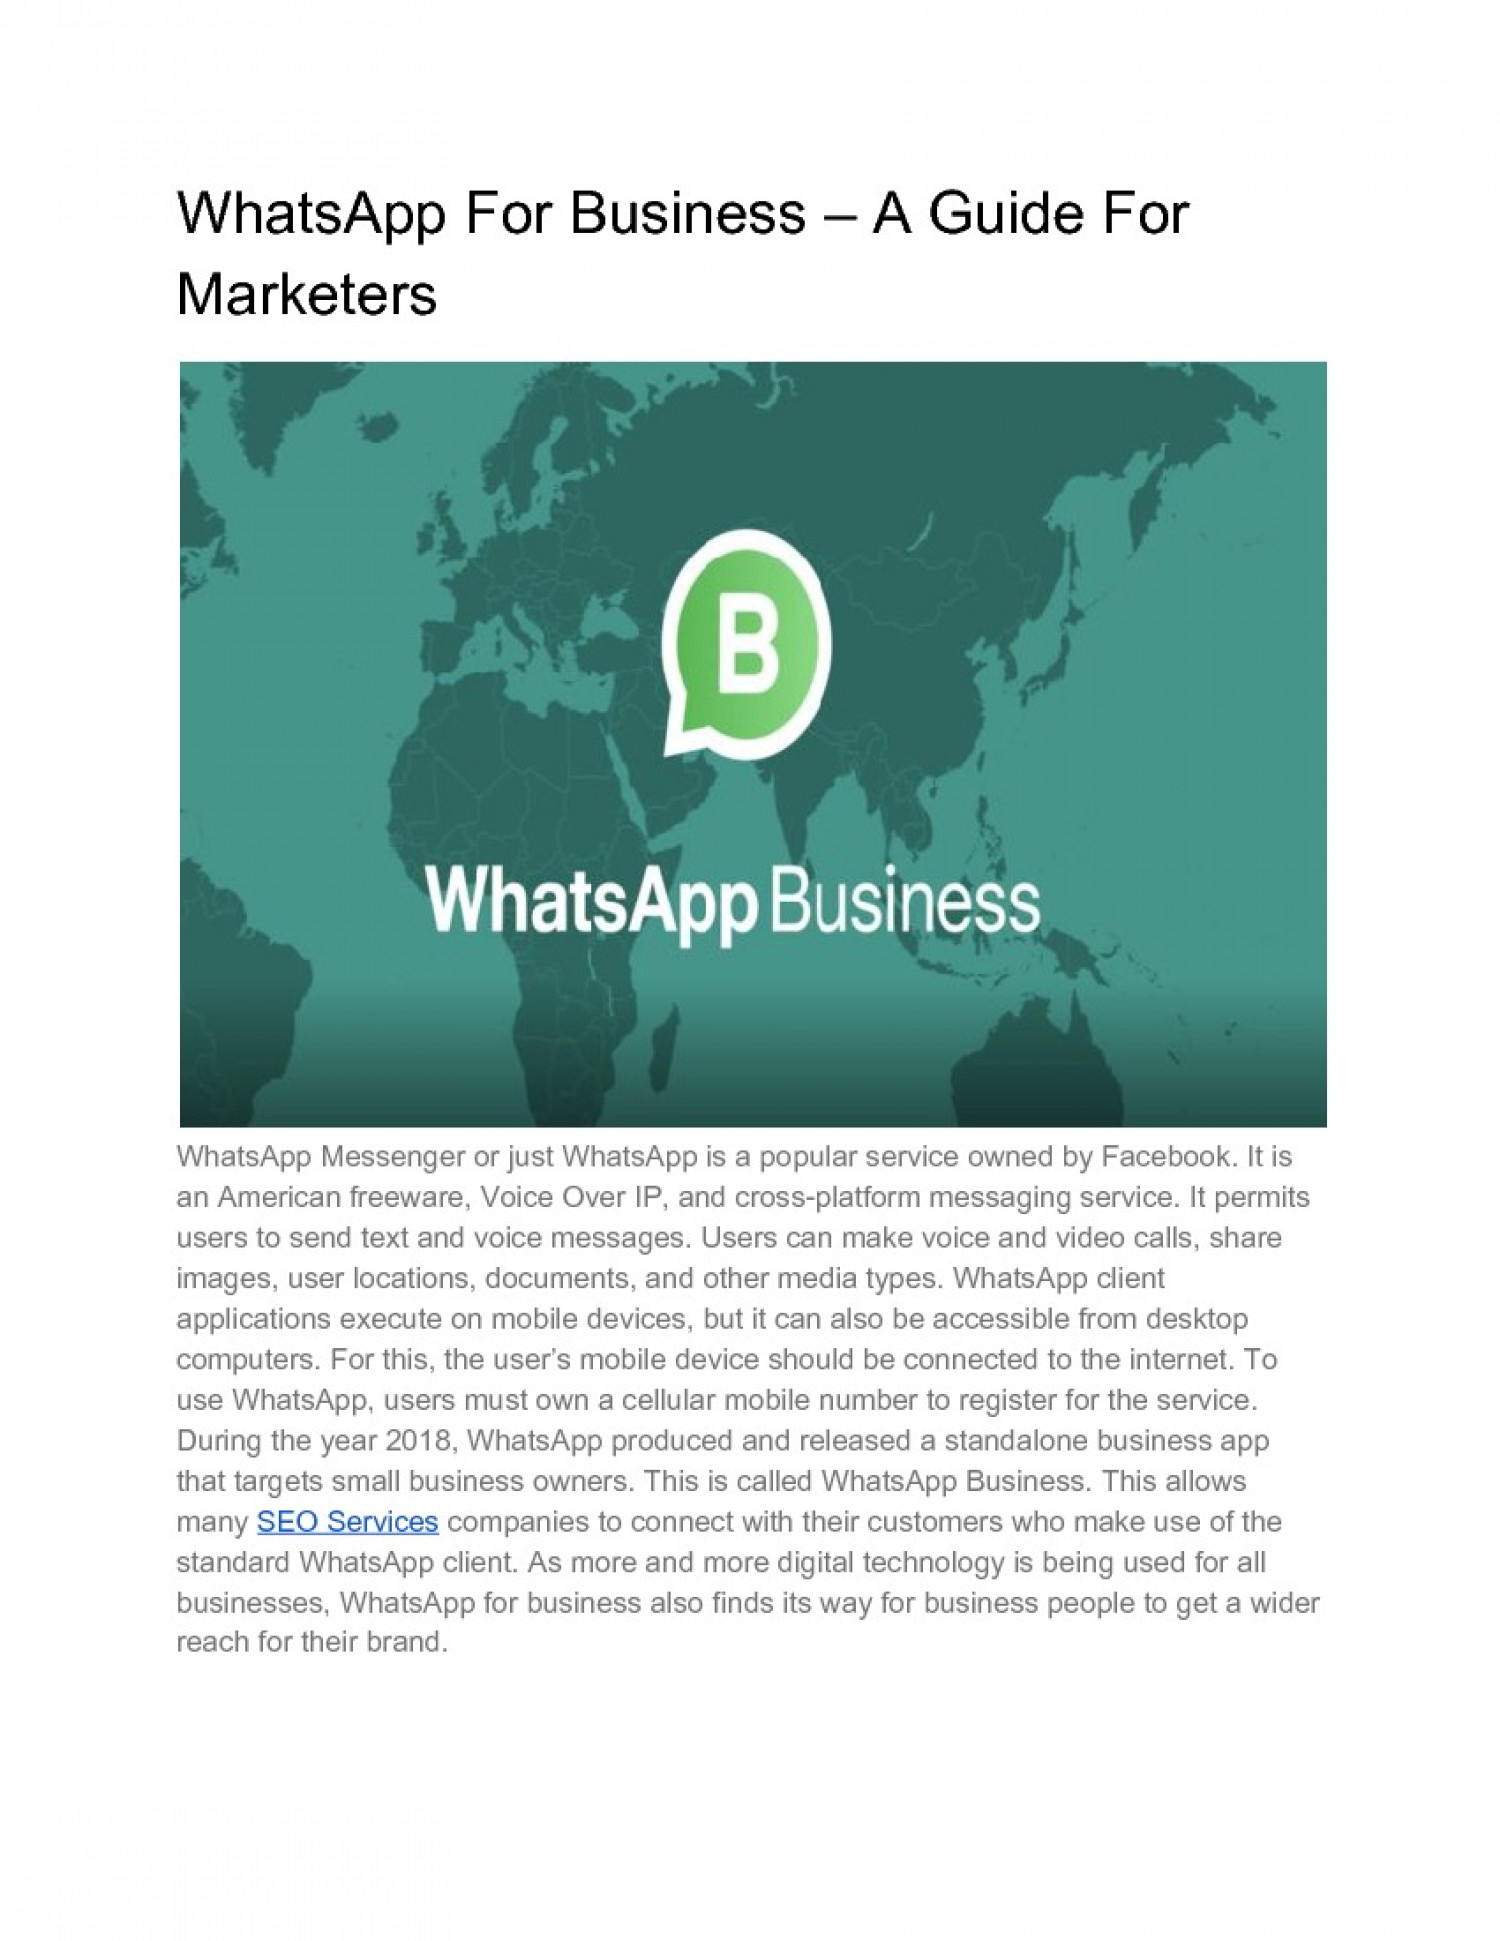 WhatsApp For Business – A Guide For Marketers Infographic